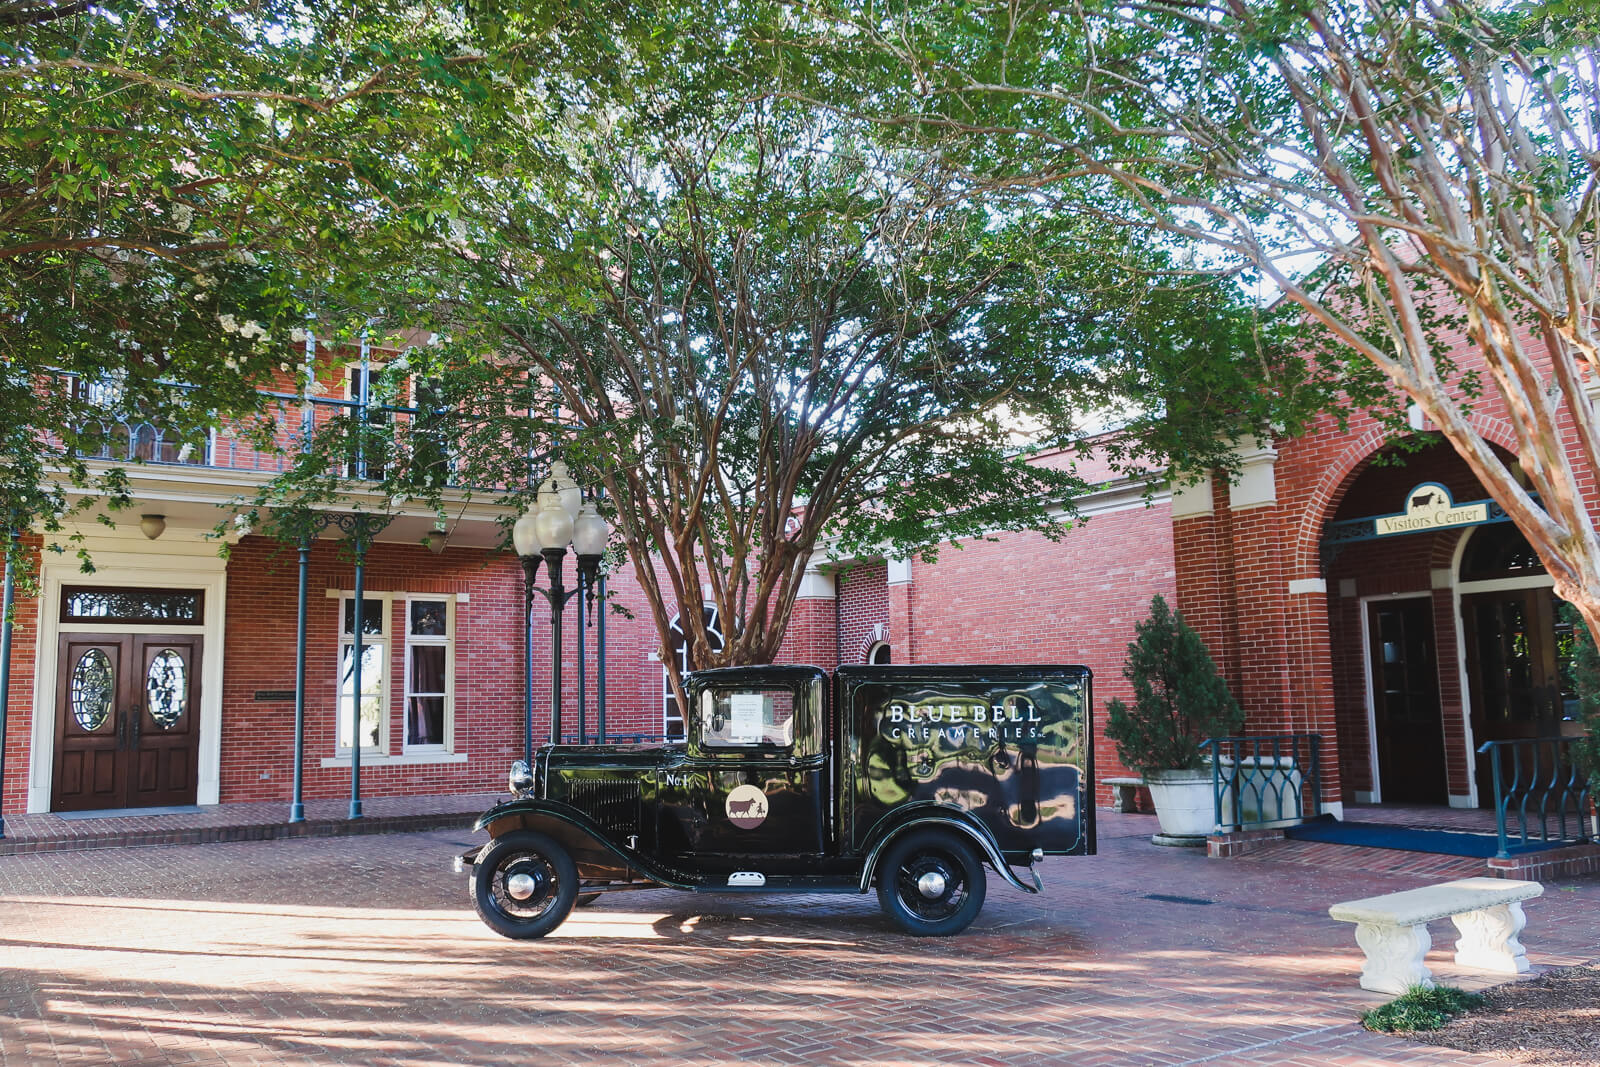 An antique car sits on a brick patio in front of the Blue Bell Factory in Brenham Texas